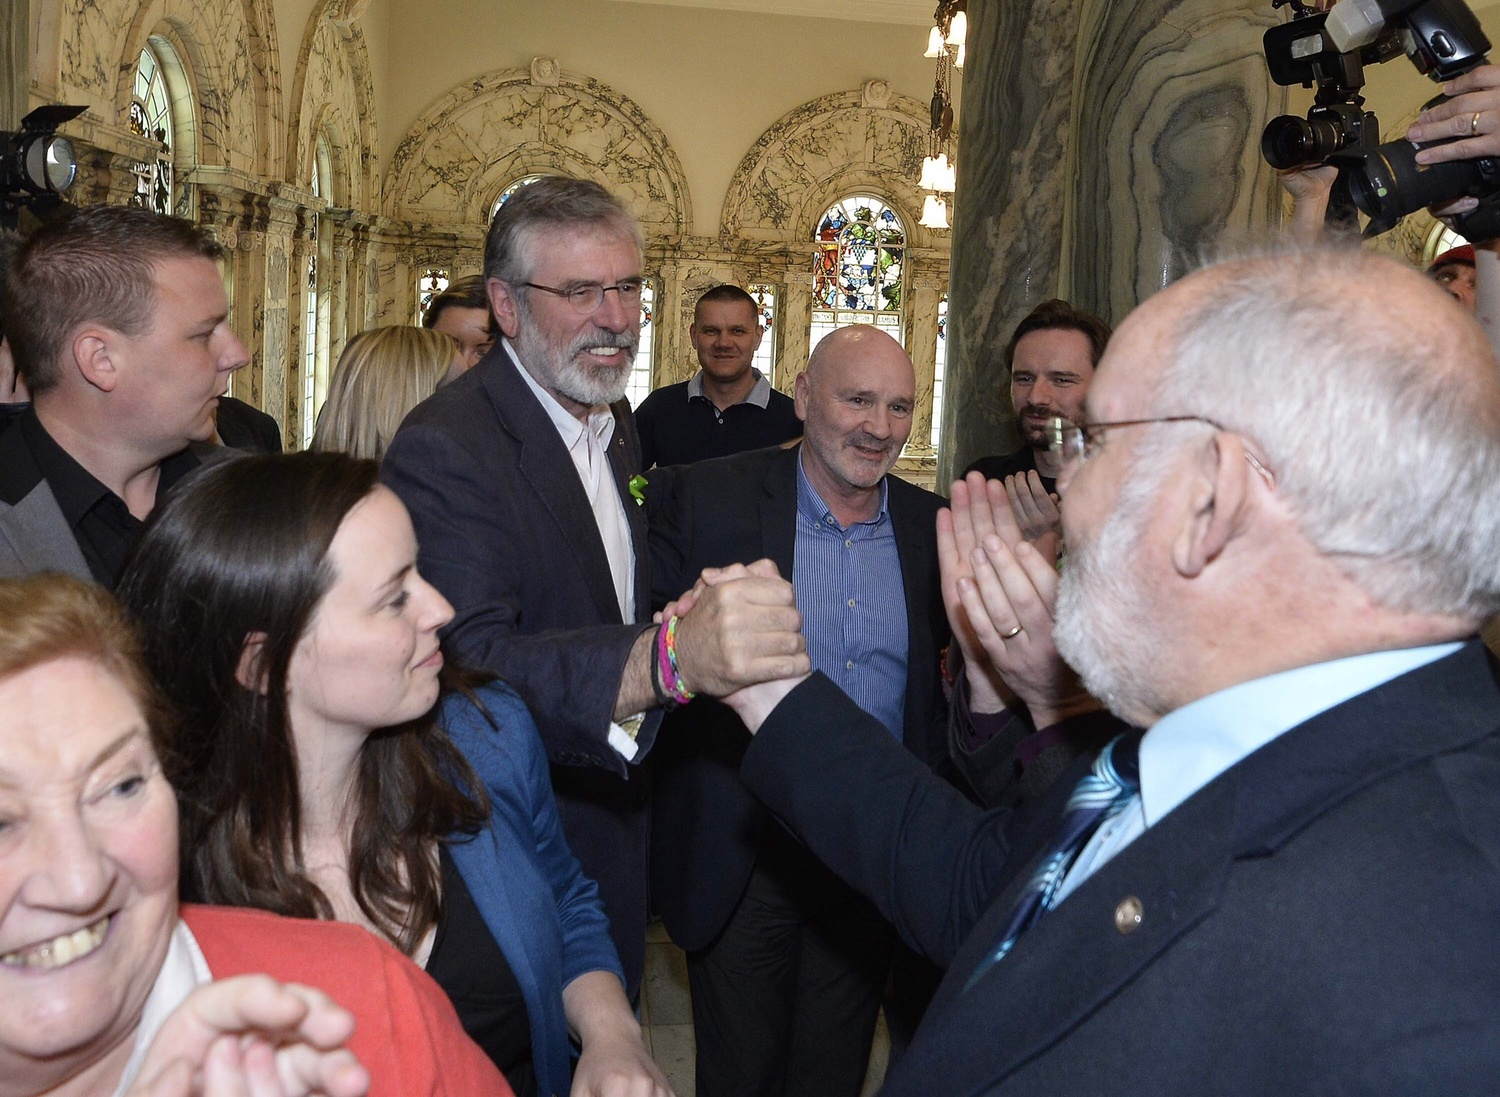 Gerry Adams arrives from Dublin at the Belfast city hall election count